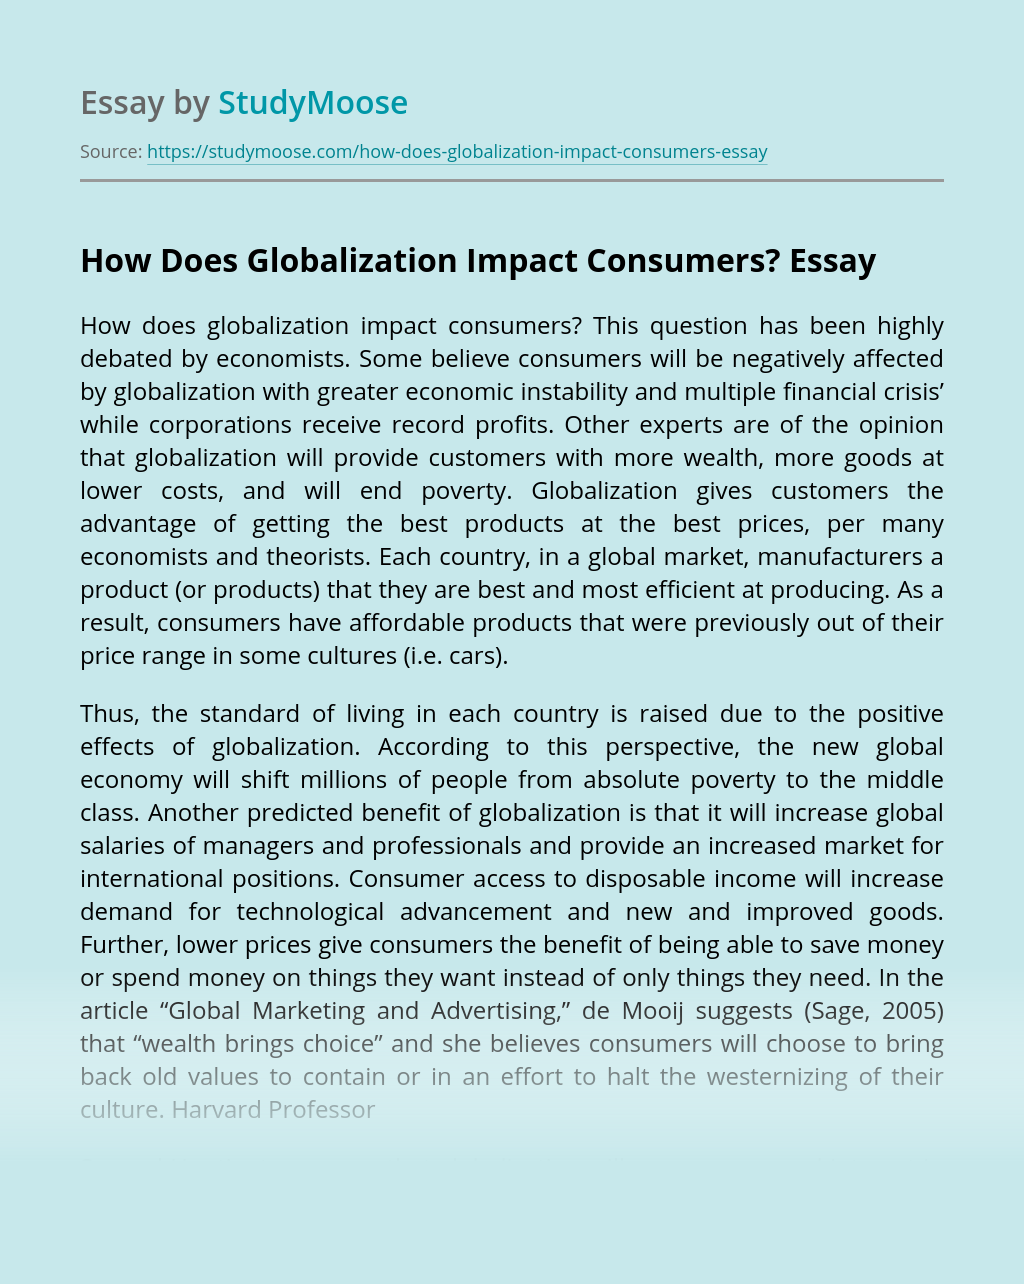 How Does Globalization Impact Consumers?